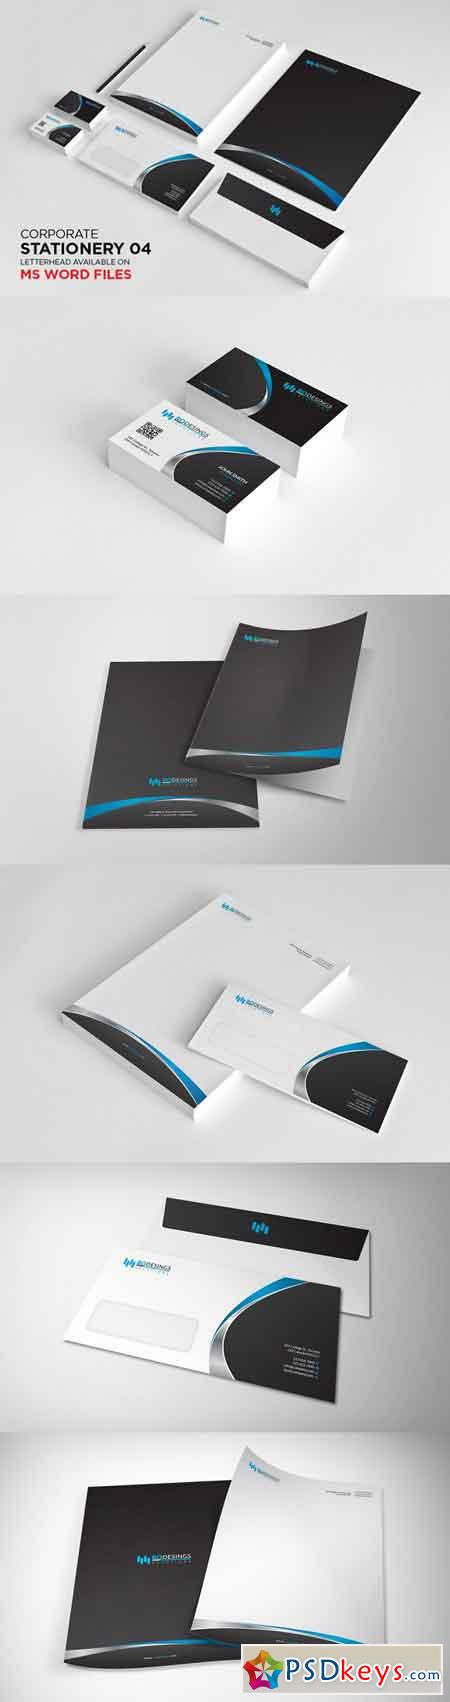 Corporate Stationery 04 719493